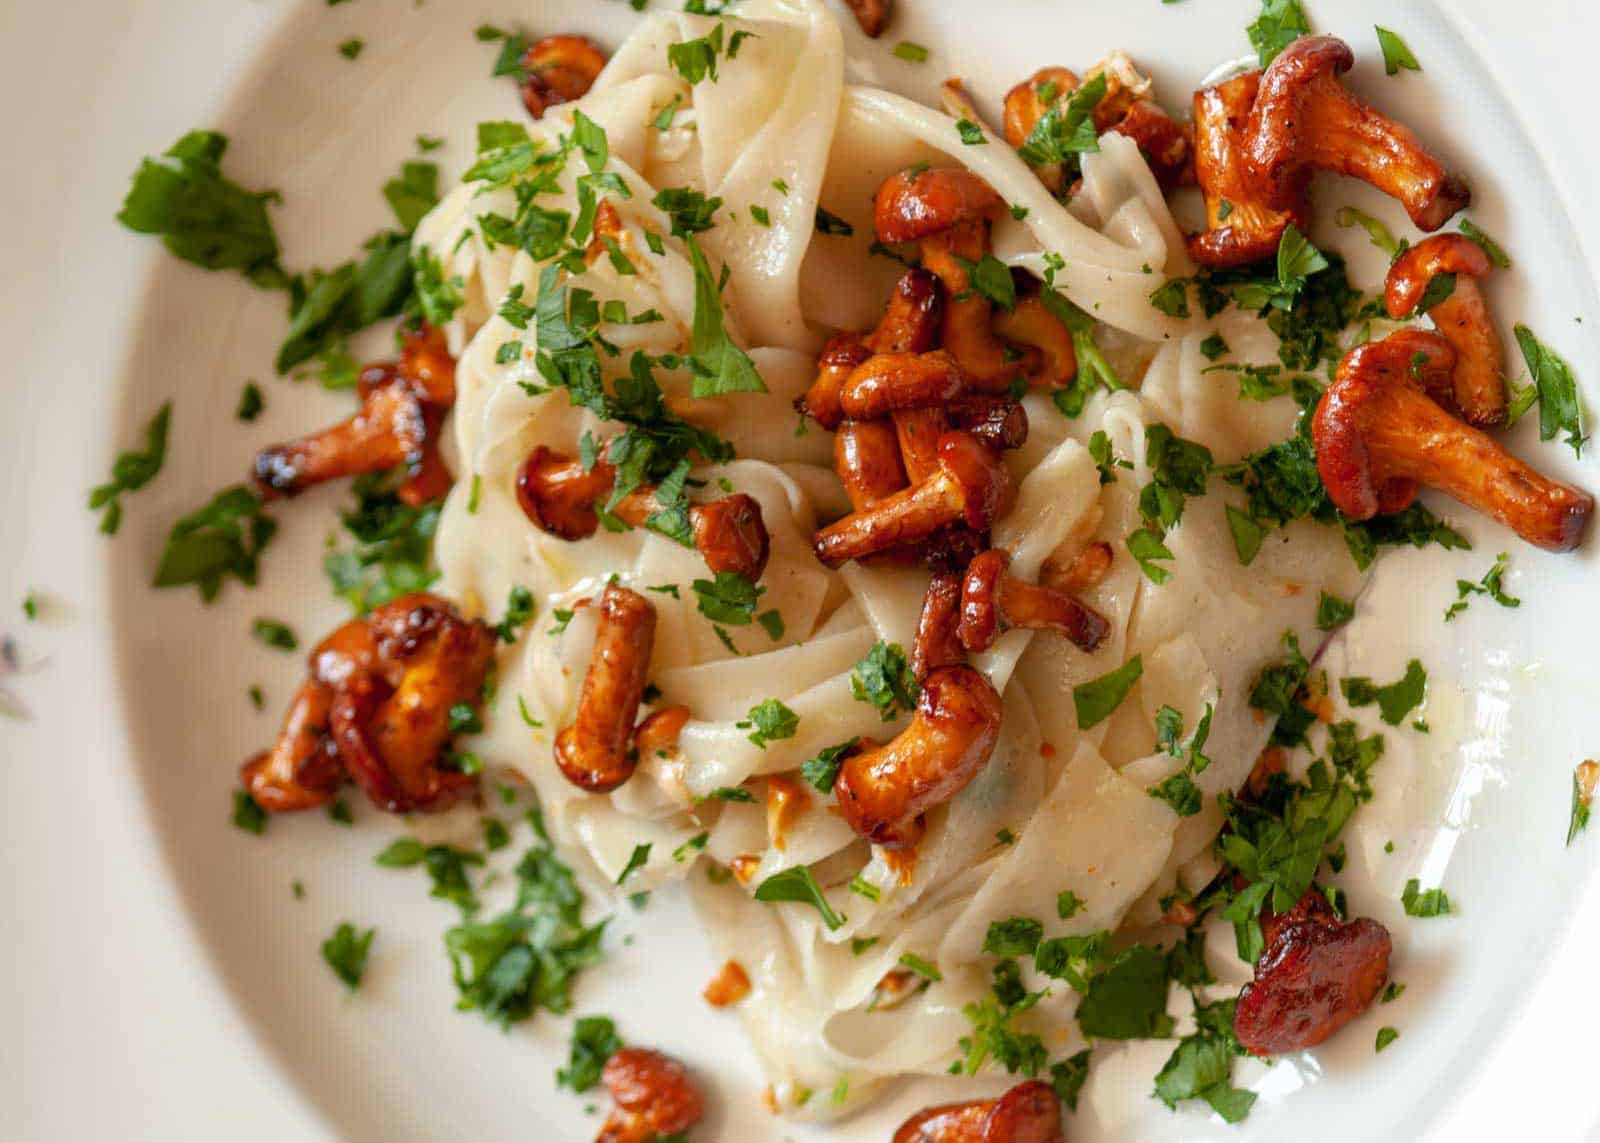 Ribbon noodles with chanterelles recipe